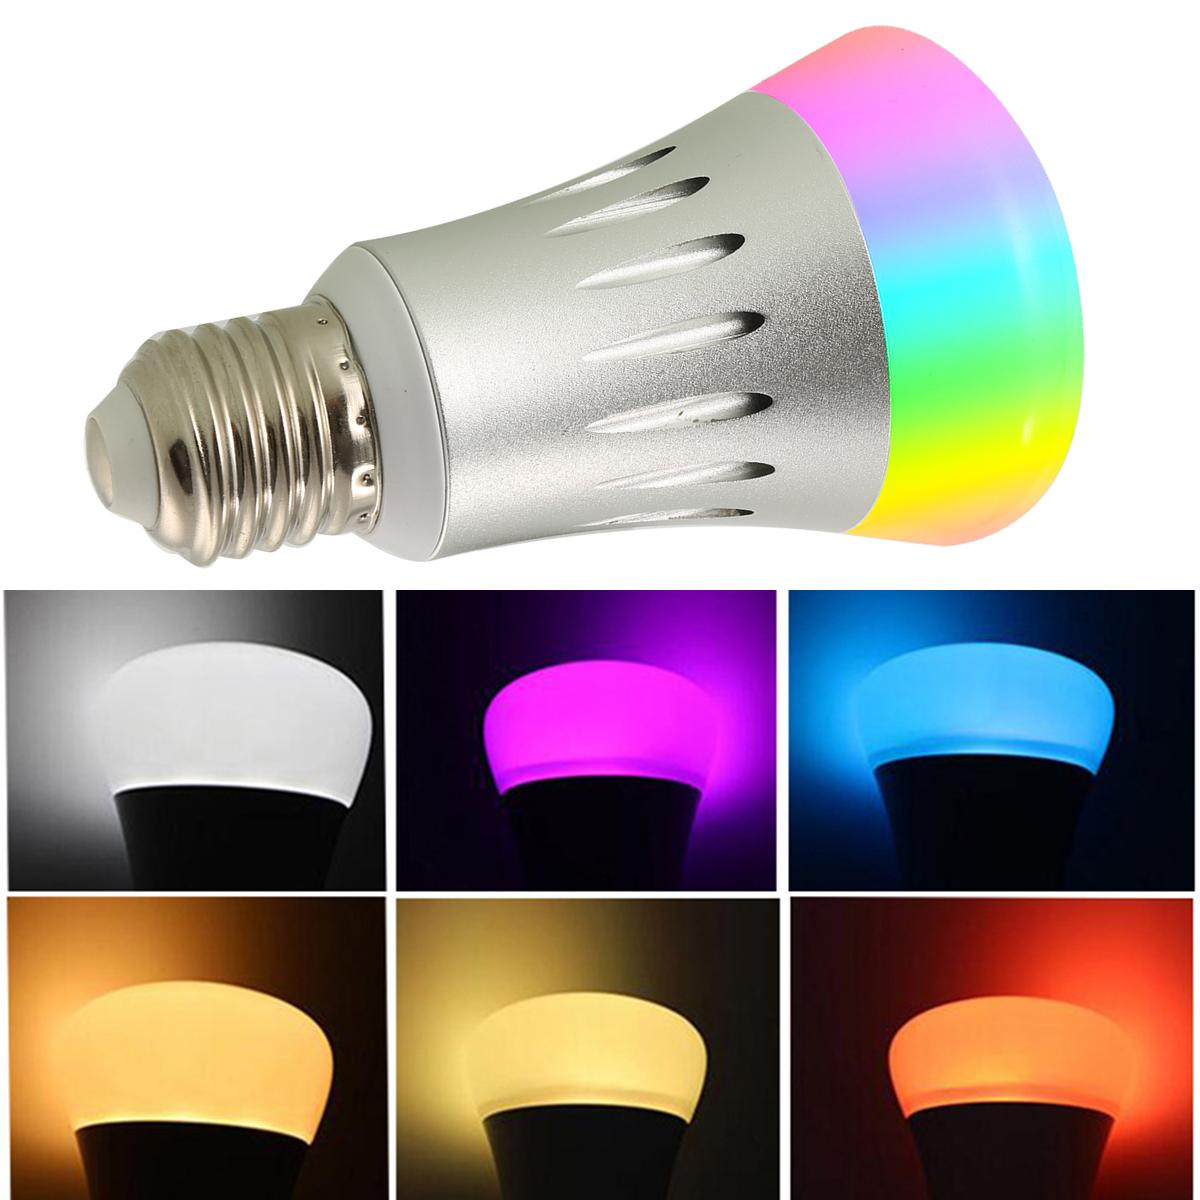 50 Packs Multi Color Changing Dimmable Wifi LED Smart Lights